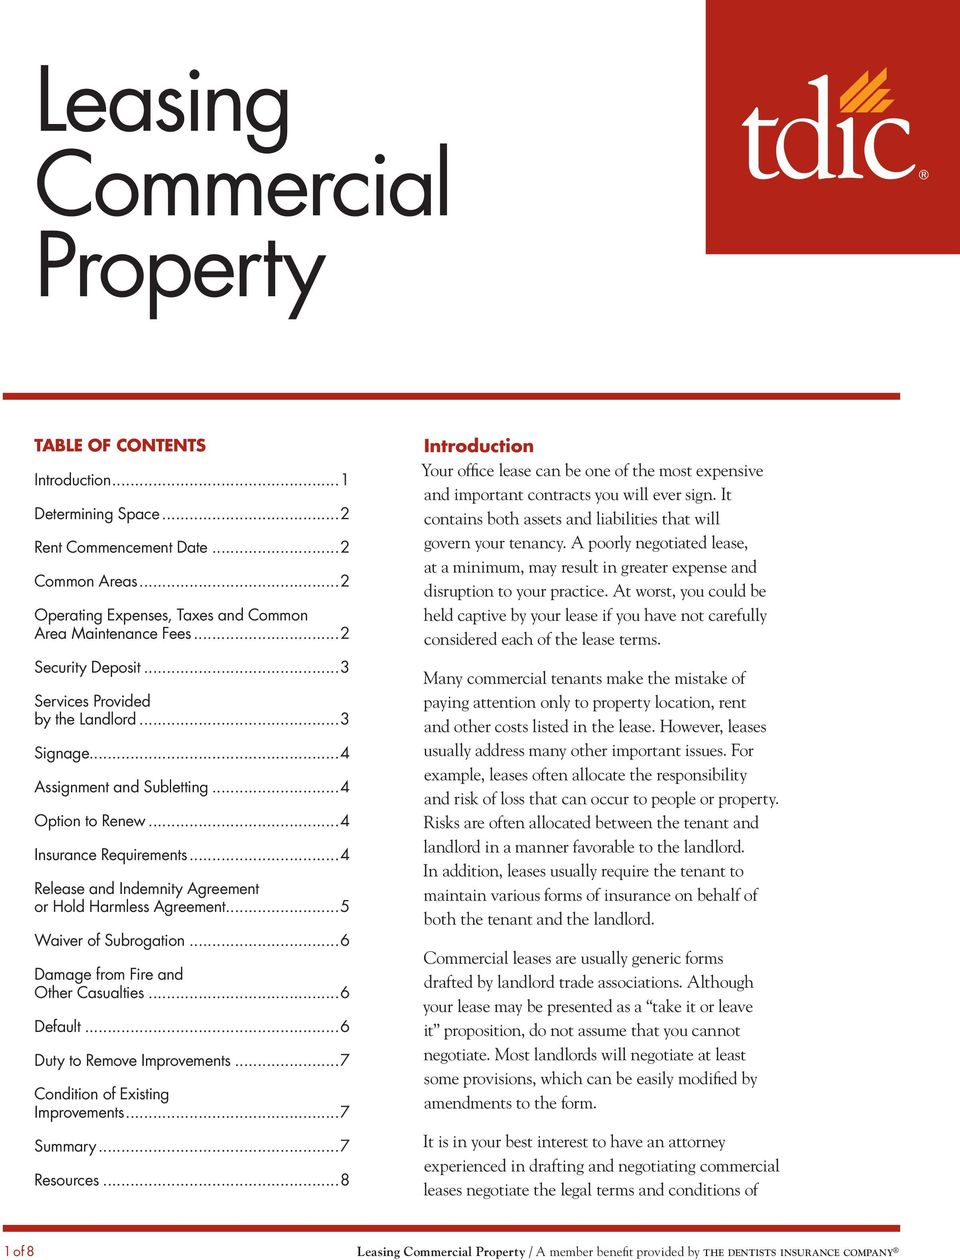 Leasing Commercial Property Pdf